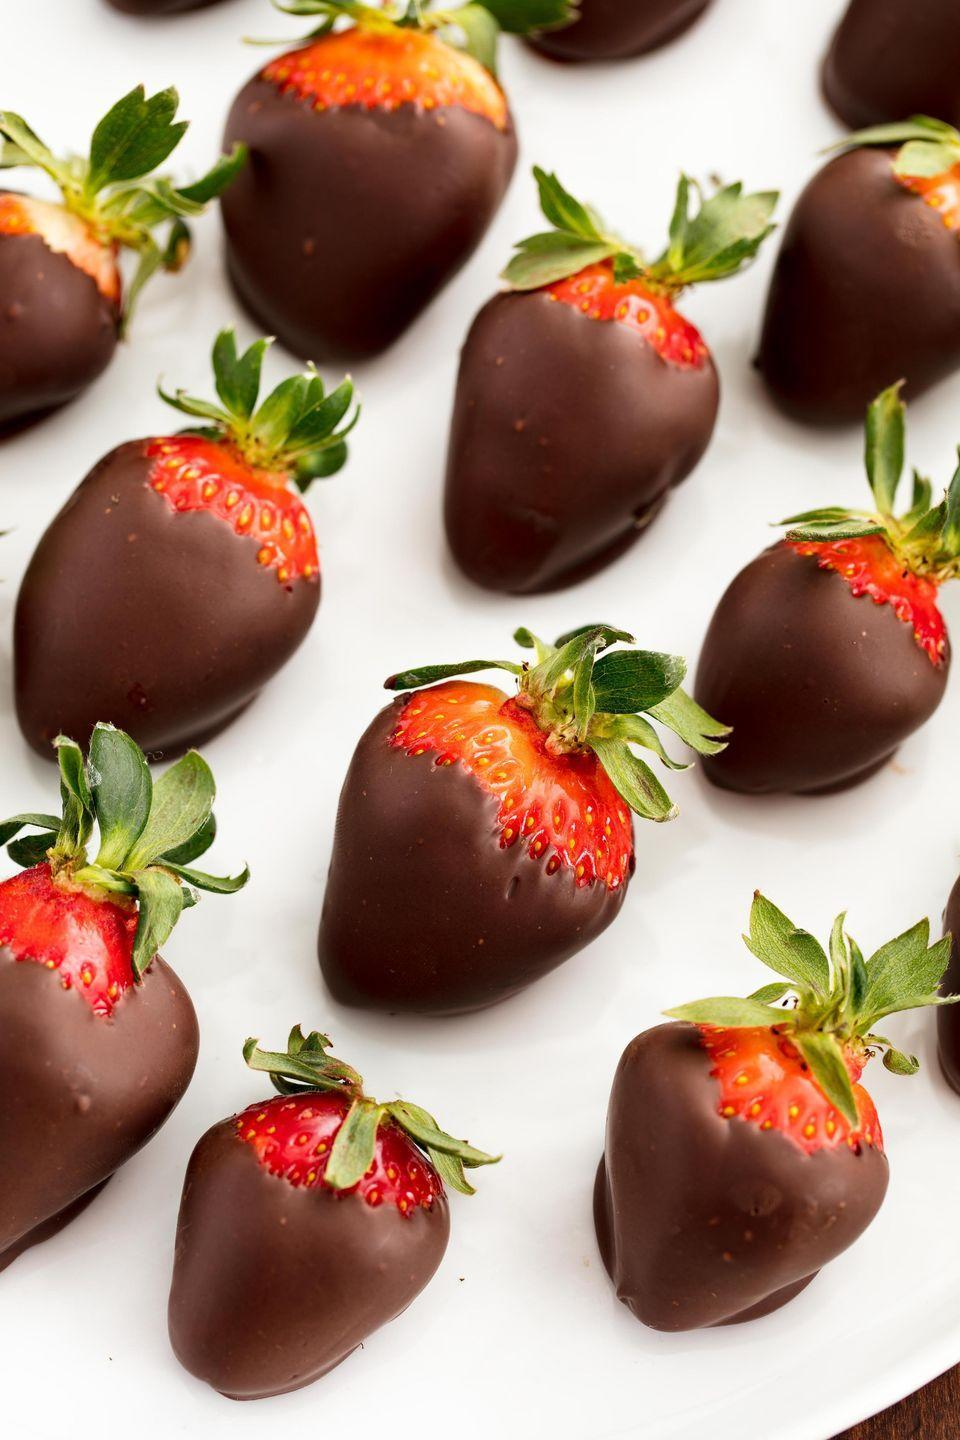 "<p>There is simply nothing better.</p><p>Get the recipe from <a href=""https://www.delish.com/cooking/recipe-ideas/recipes/a58094/how-to-make-chocolate-covered-strawberries/"" rel=""nofollow noopener"" target=""_blank"" data-ylk=""slk:Delish"" class=""link rapid-noclick-resp"">Delish</a>.</p>"